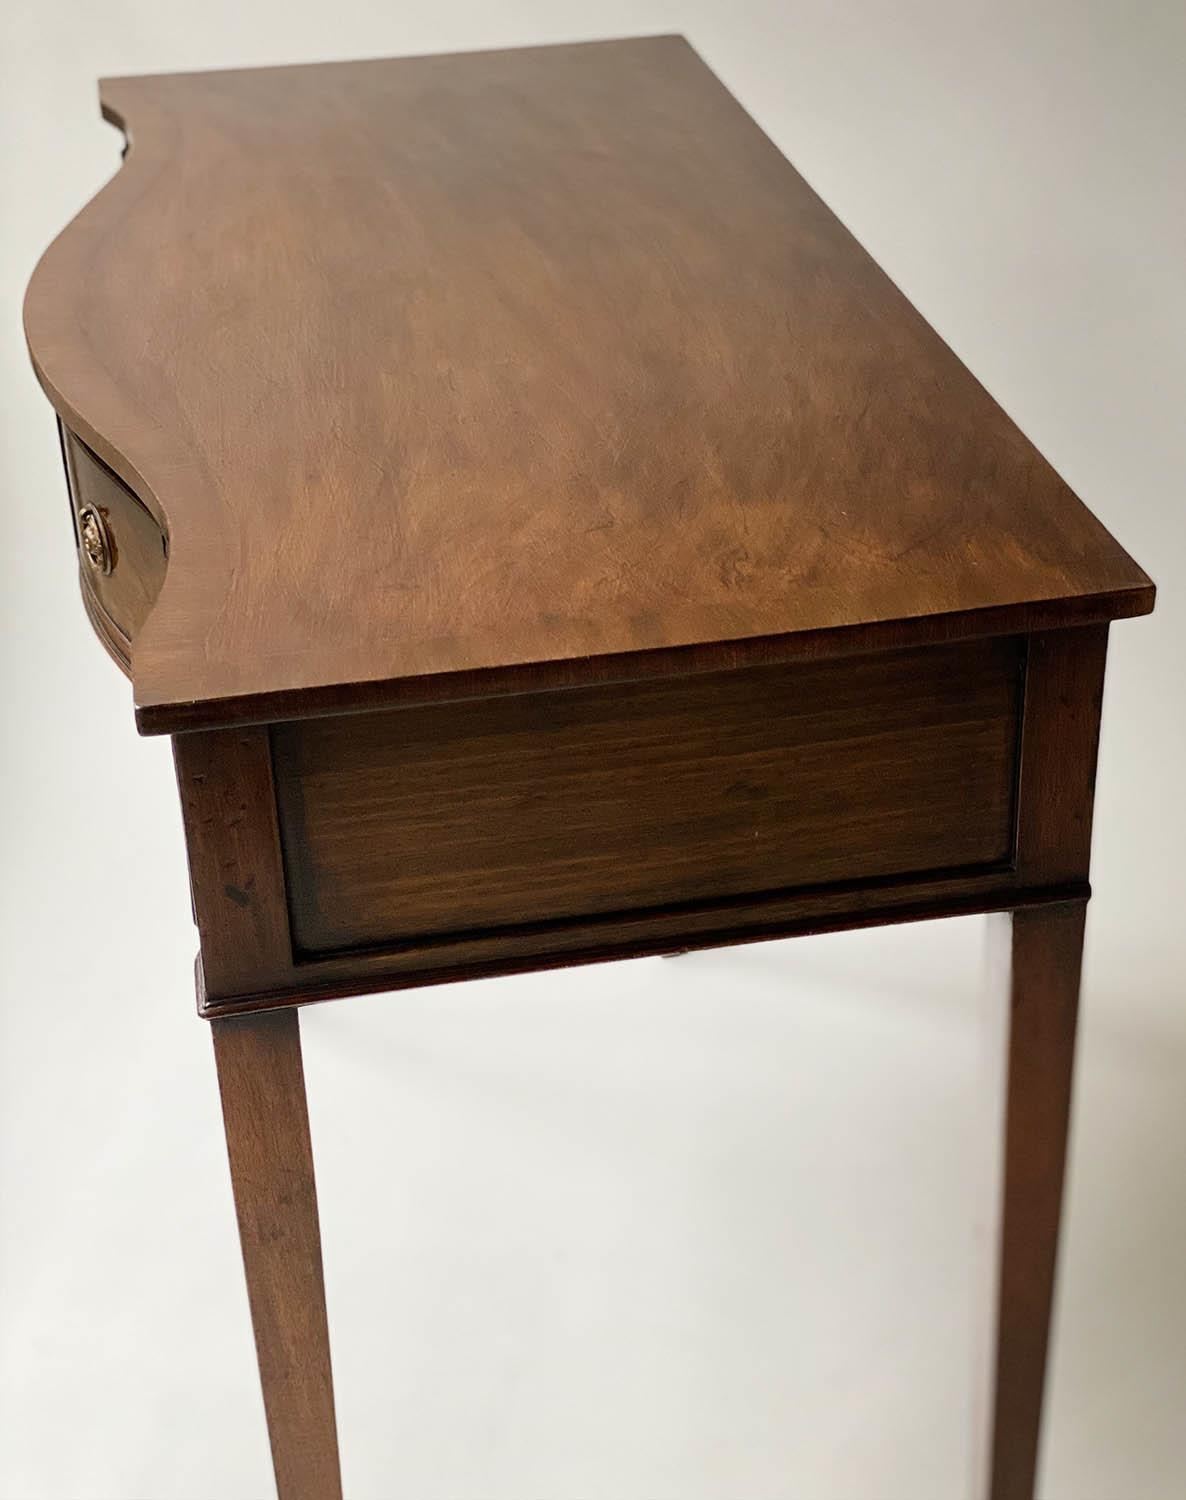 HALL TABLE, George III style figured mahogany and brass inlaid of serpentine outline with two frieze - Image 2 of 9